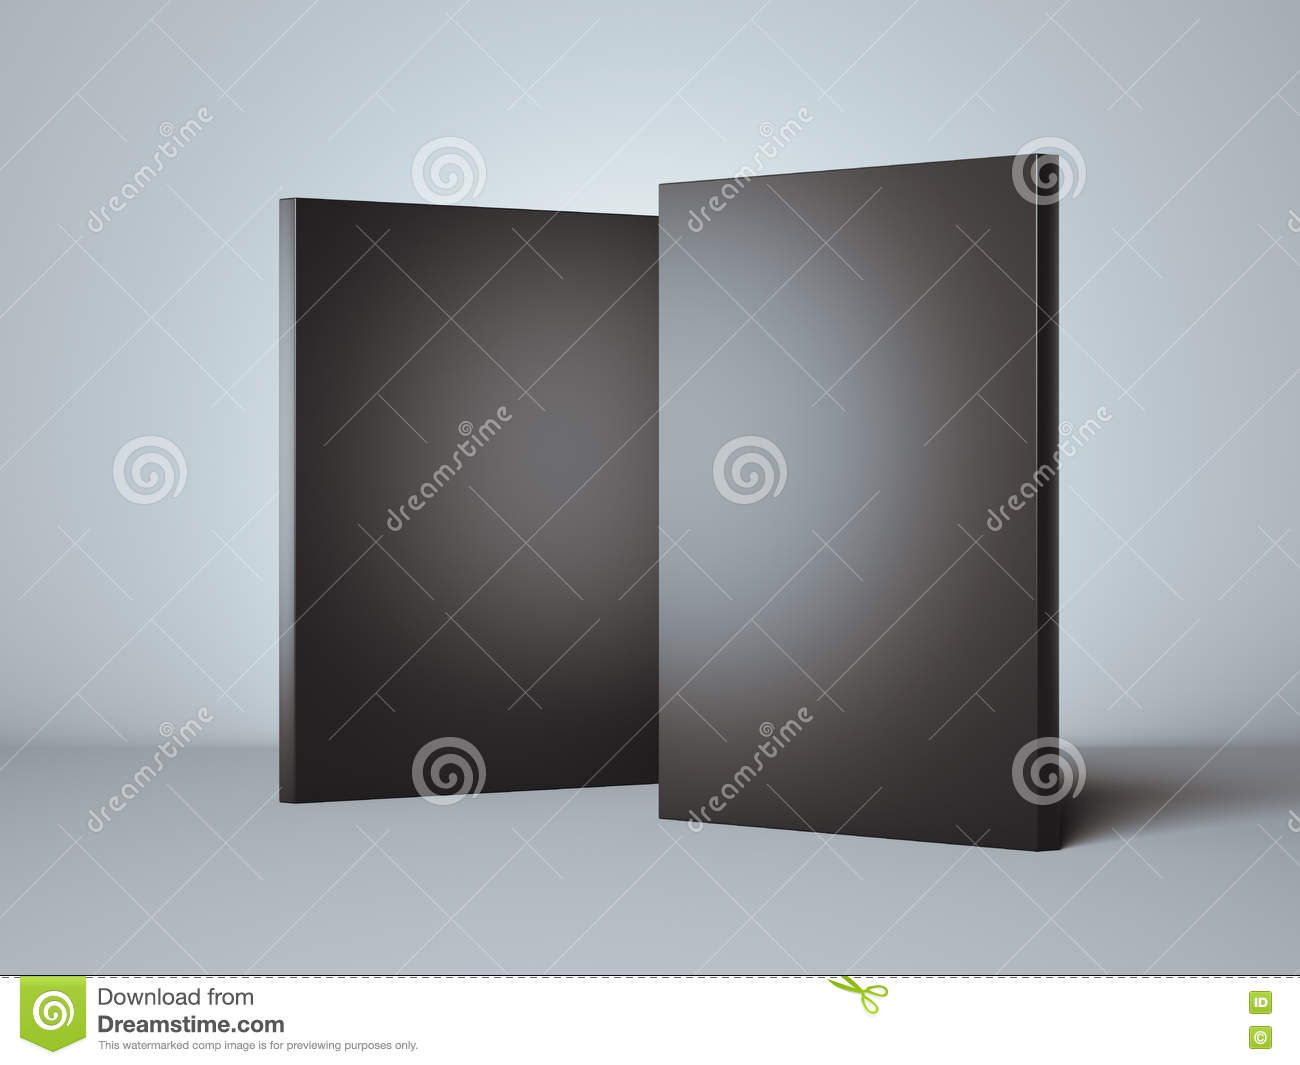 Two black boxes 3d rendering stock illustration image for Black box container studios